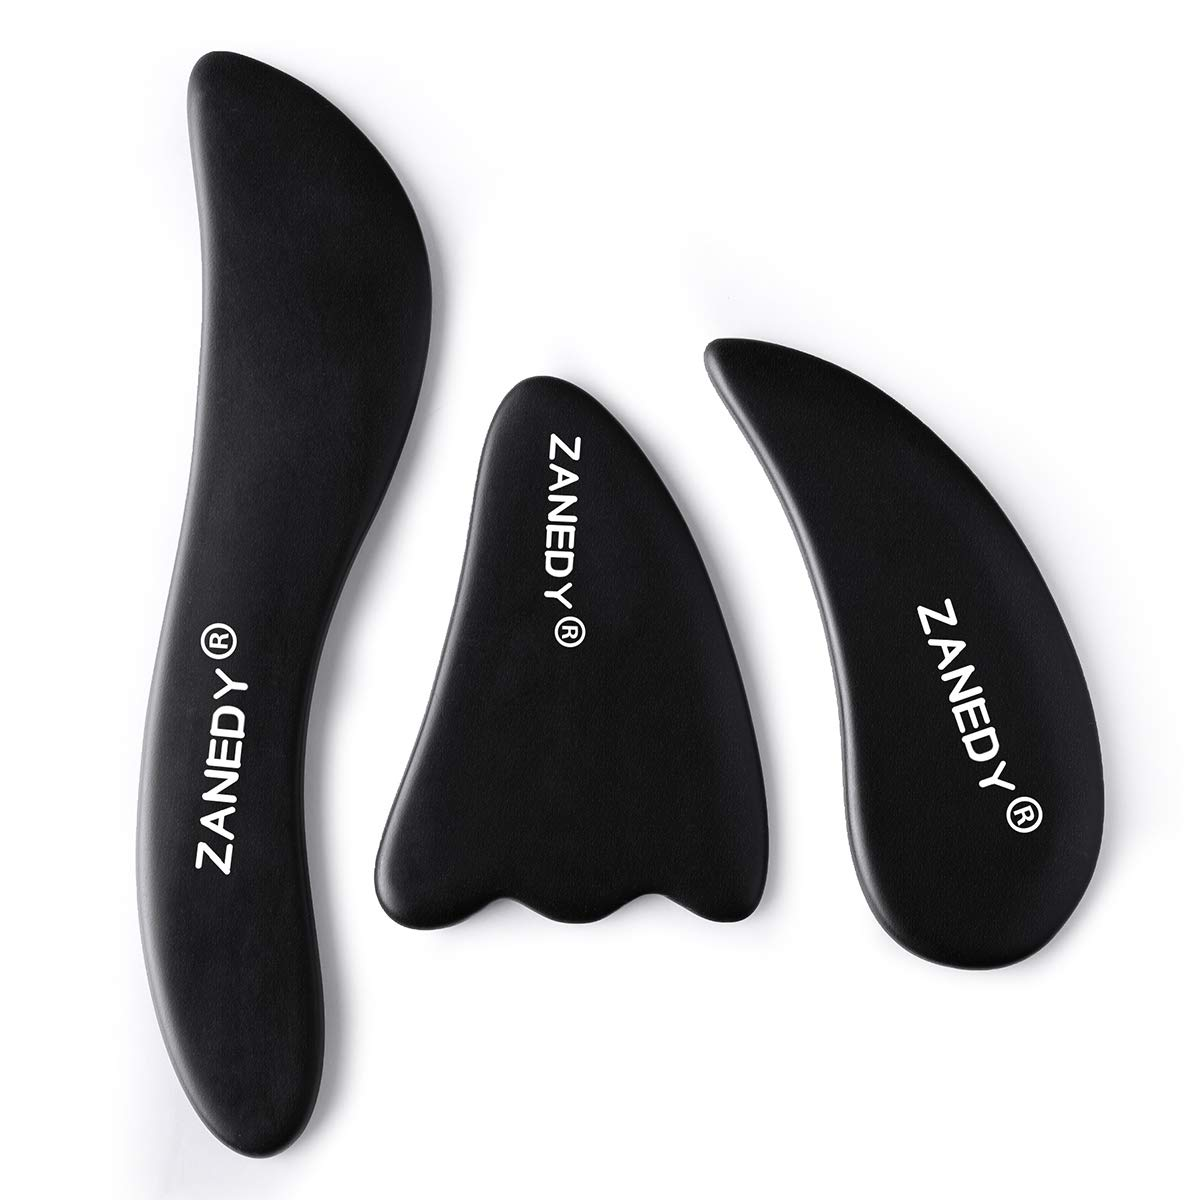 Gua sha Scraping Tools Trigger Point Massager Ultra Smooth Edge Face and Body Physical Therapy Tool for Reduce Muscle Pain,Massage Tendon,Myofascial Releaser and ASTYM, IASTM(3 Set)